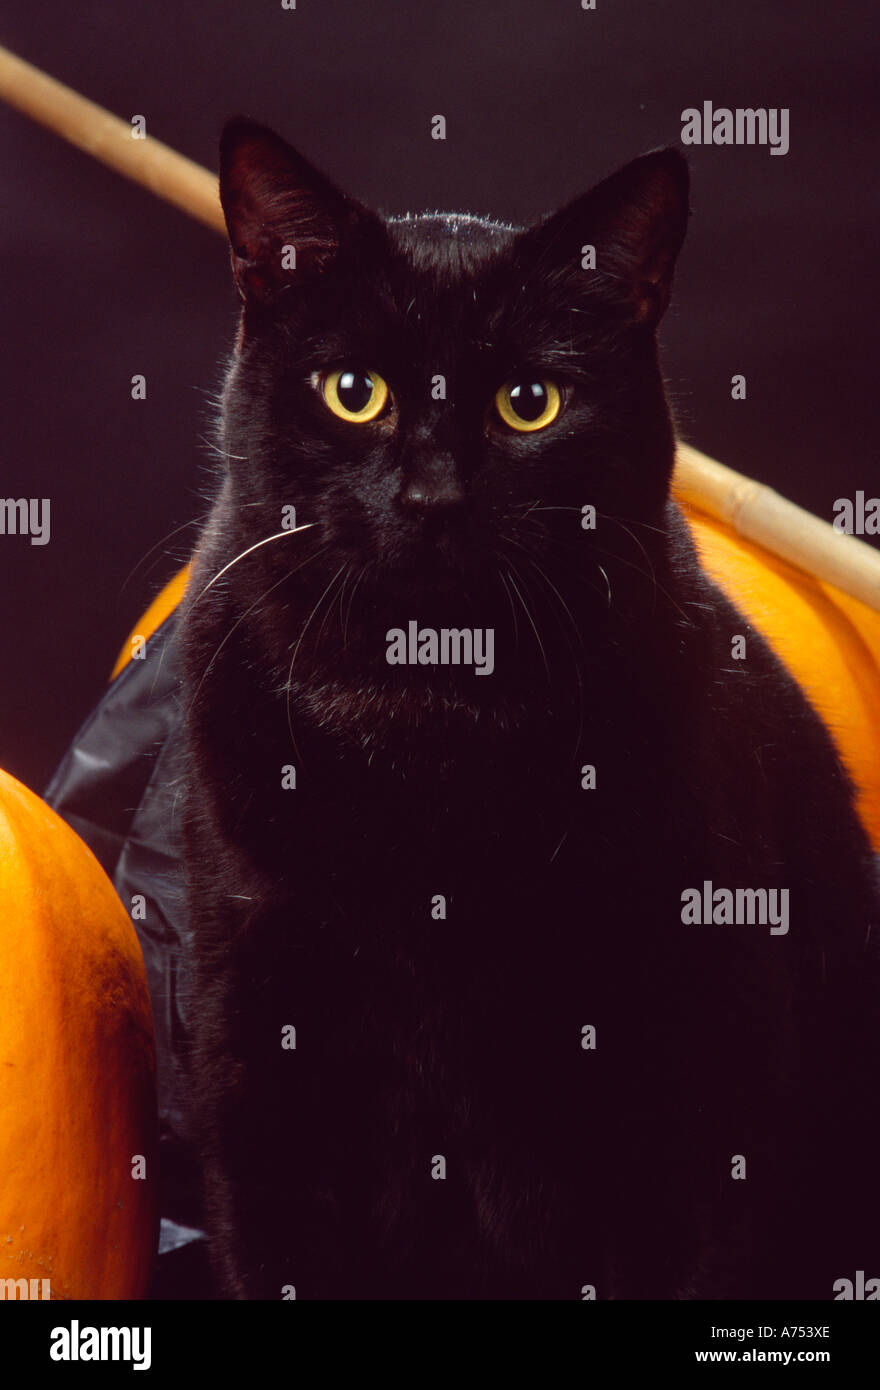 Zucca Halloween Gatto.Stock Photo Gatto Domestico Nero Shorthair Zucche Di Halloween